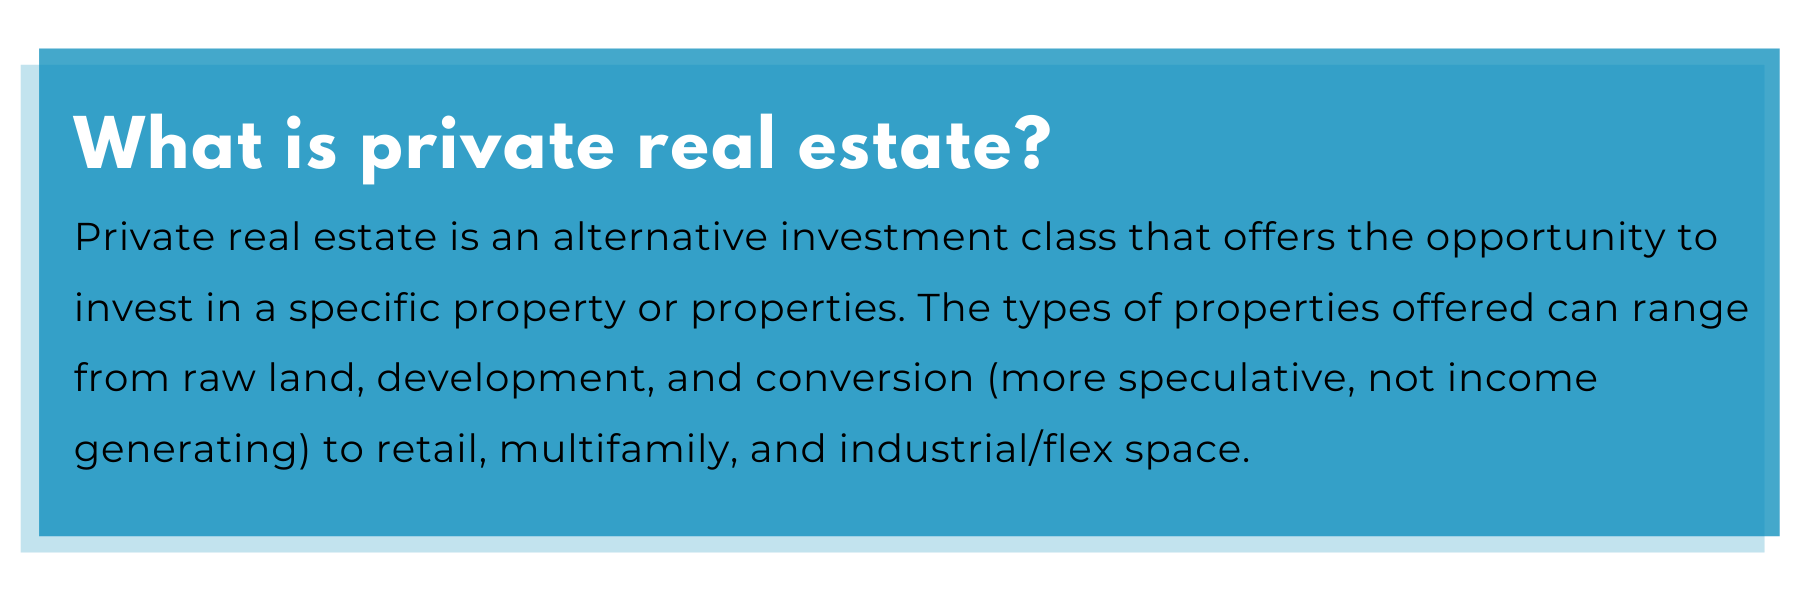 What is private real estate? Private real estate is an alternative investment class that offers the opportunity to invest in a specific property or properties. The types of properties offered can range from raw land, development, and conversion (more speculative, not income generating) to retail, multifamily, and industrial/flex space.